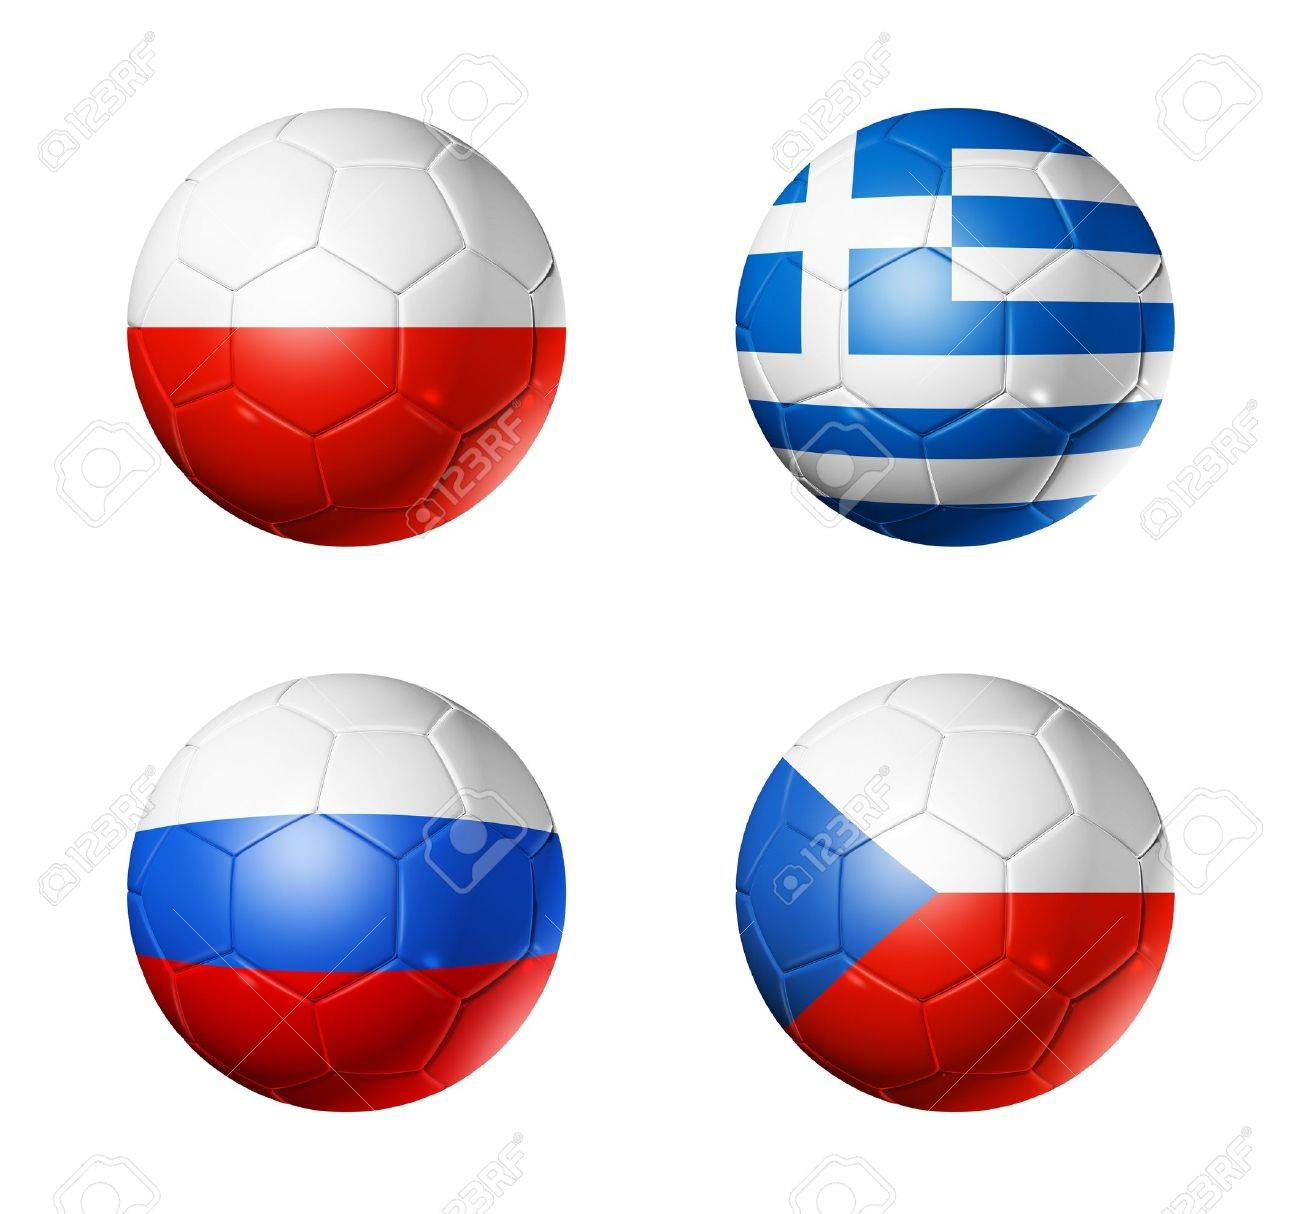 3D soccer balls with group A teams flags. UEFA euro football cup 2012. isolated on white Stock Photo - 11556839